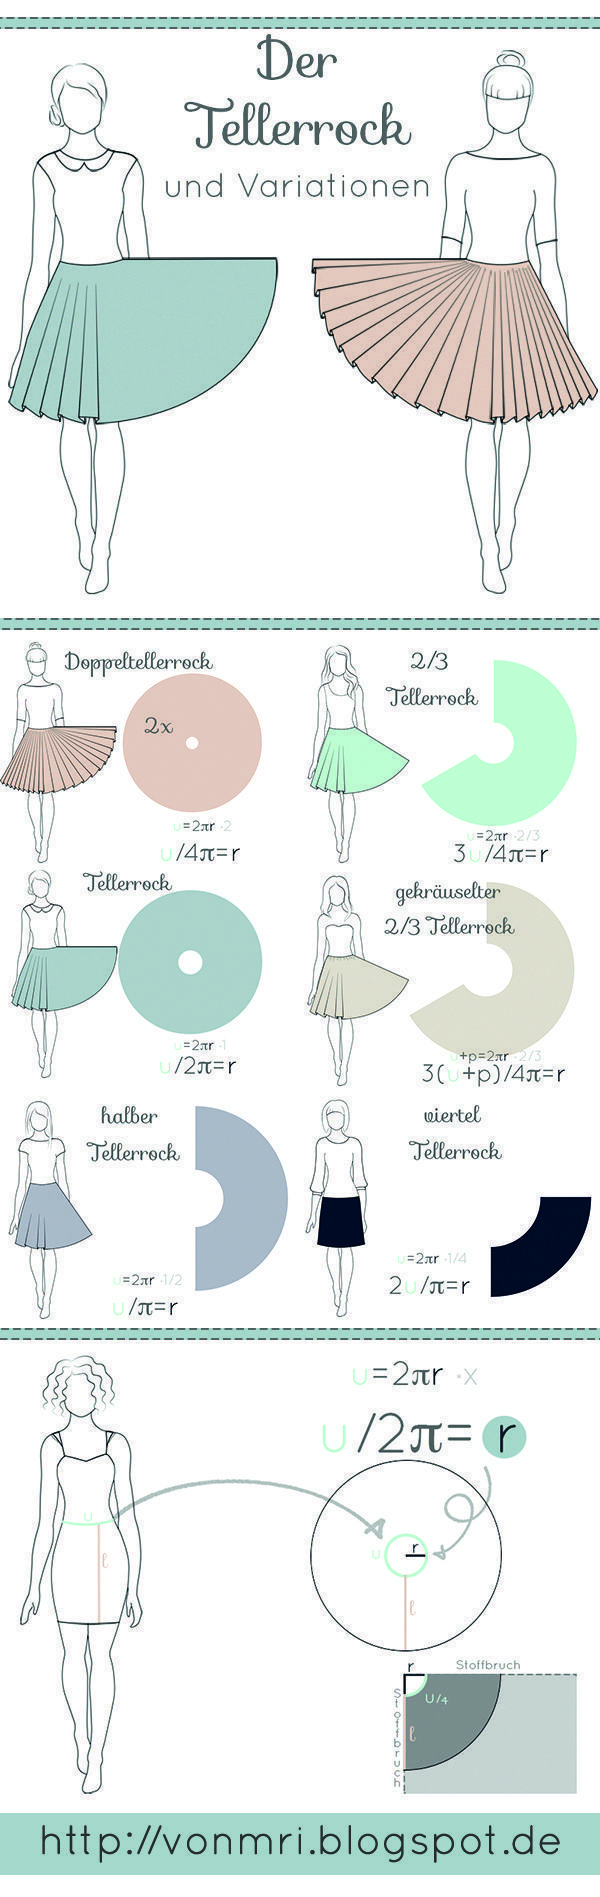 Photo of The full skirt including variations